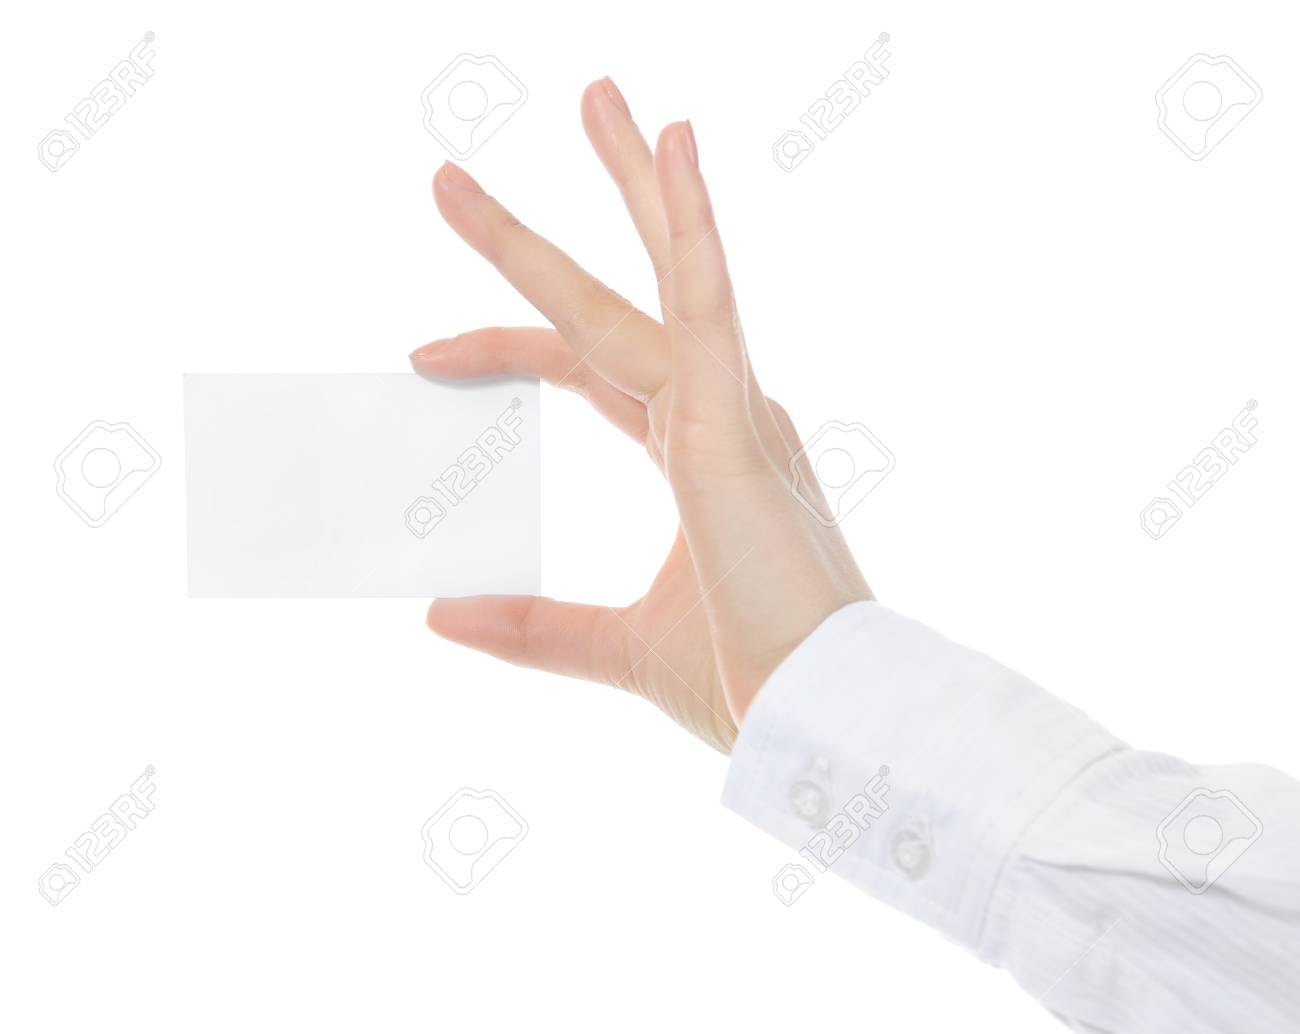 card blank in a hand Stock Photo - 8890546